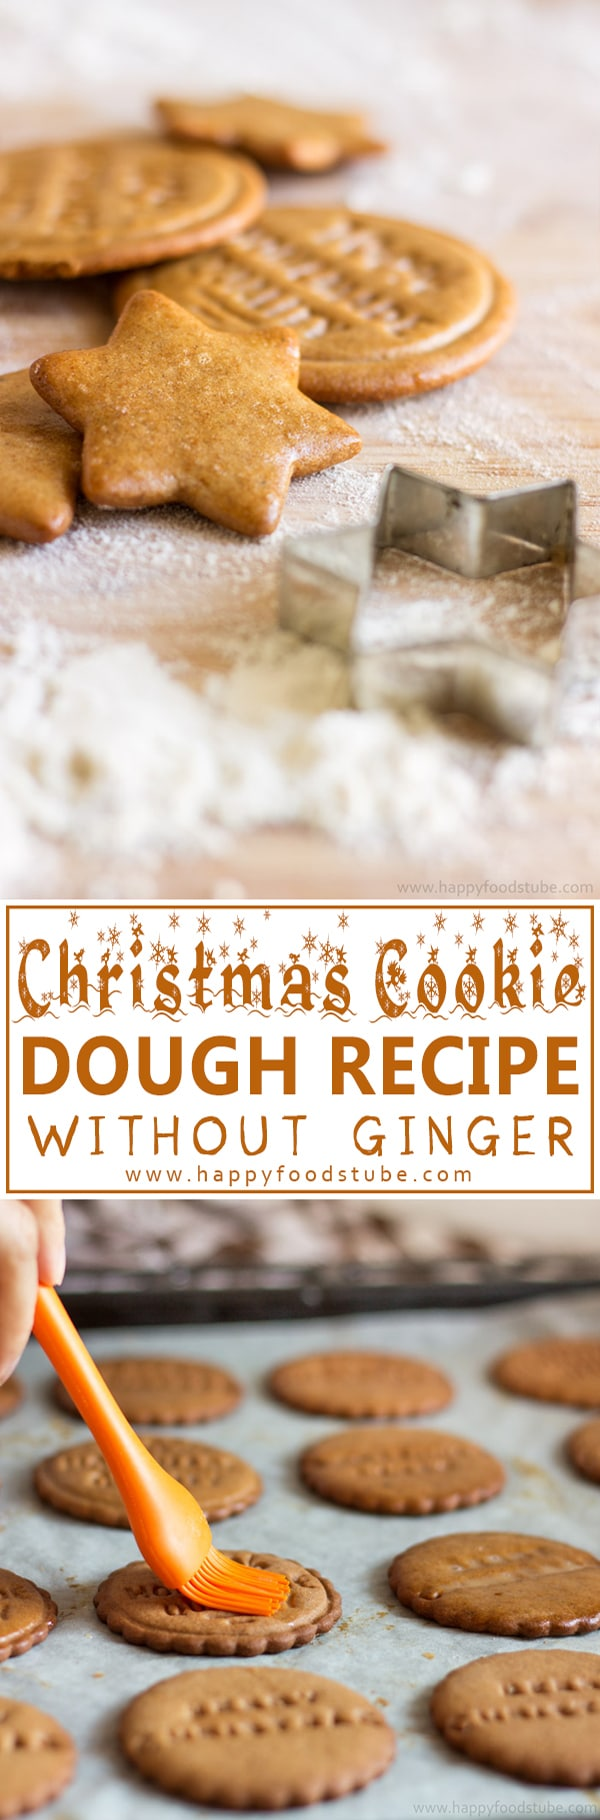 Best Christmas Cookie Dough Recipe Without Ginger